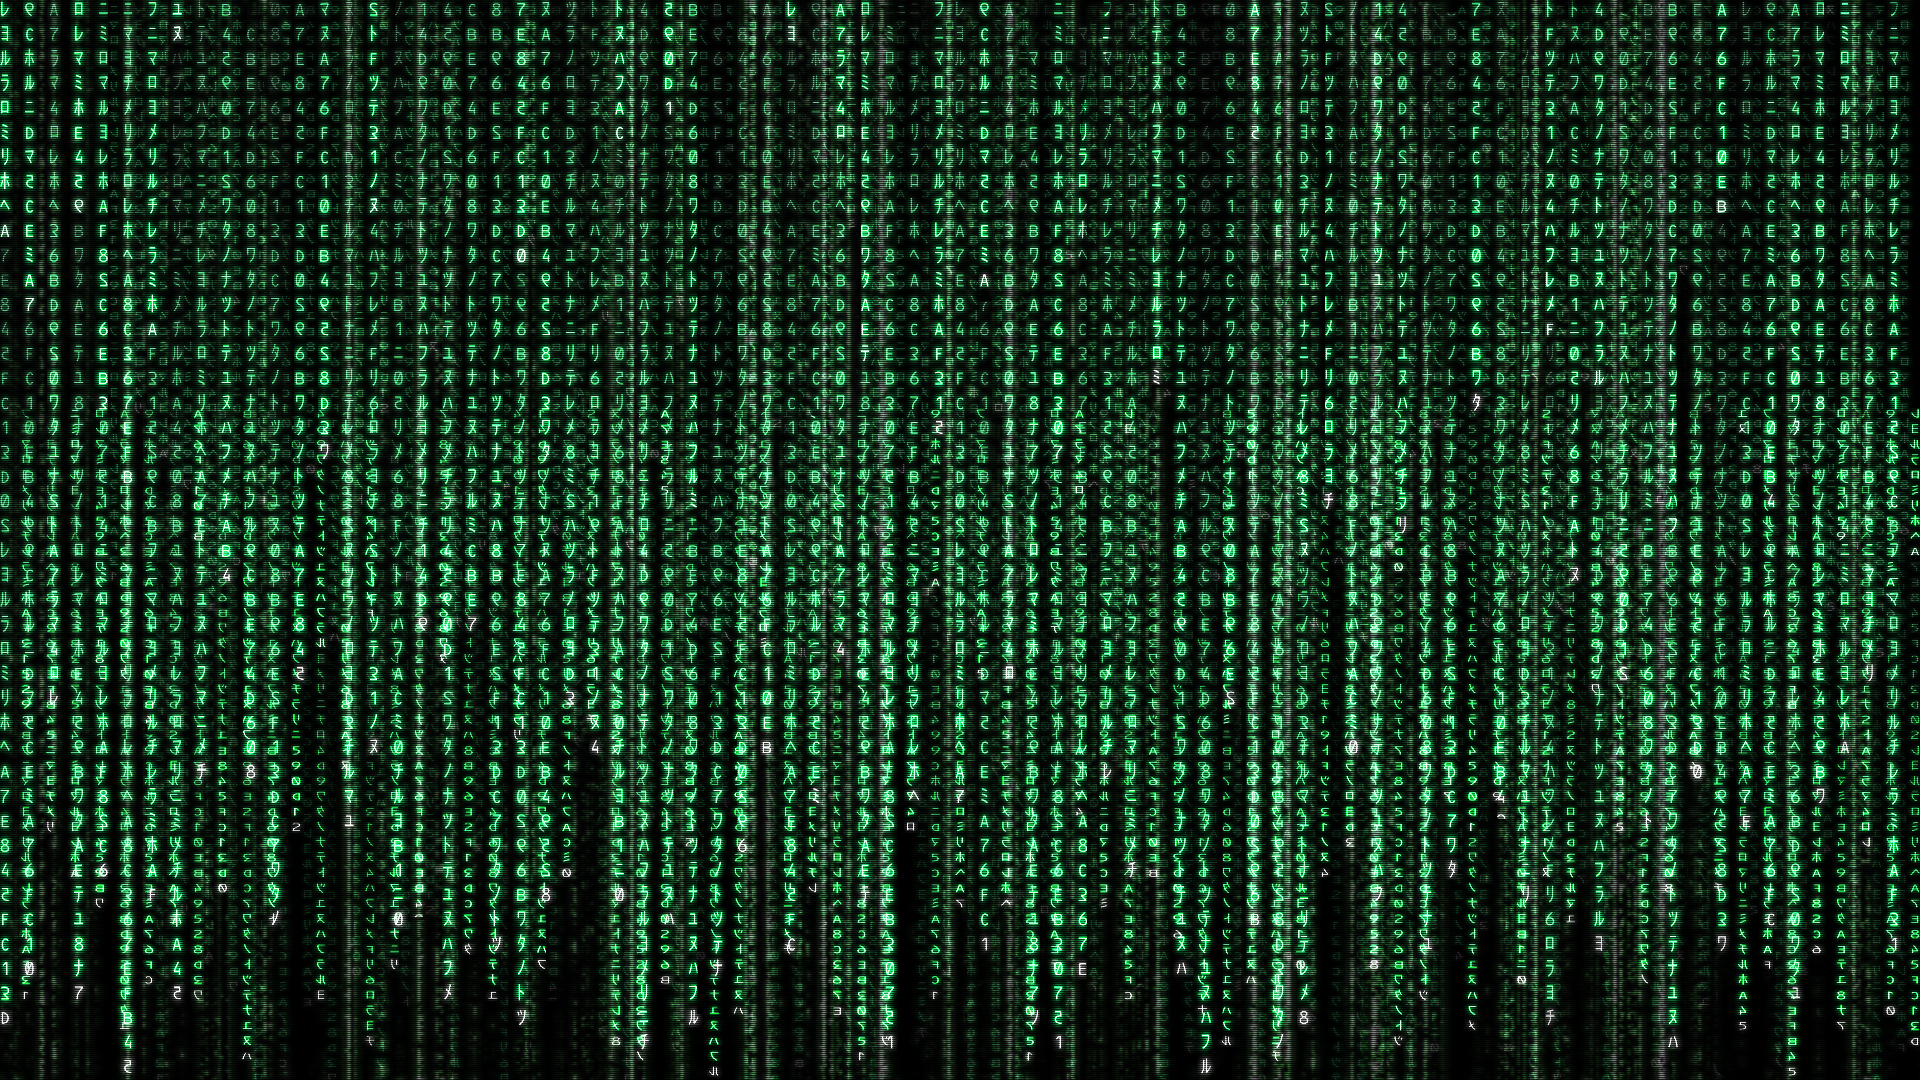 The Matrix Has You Wallpapers